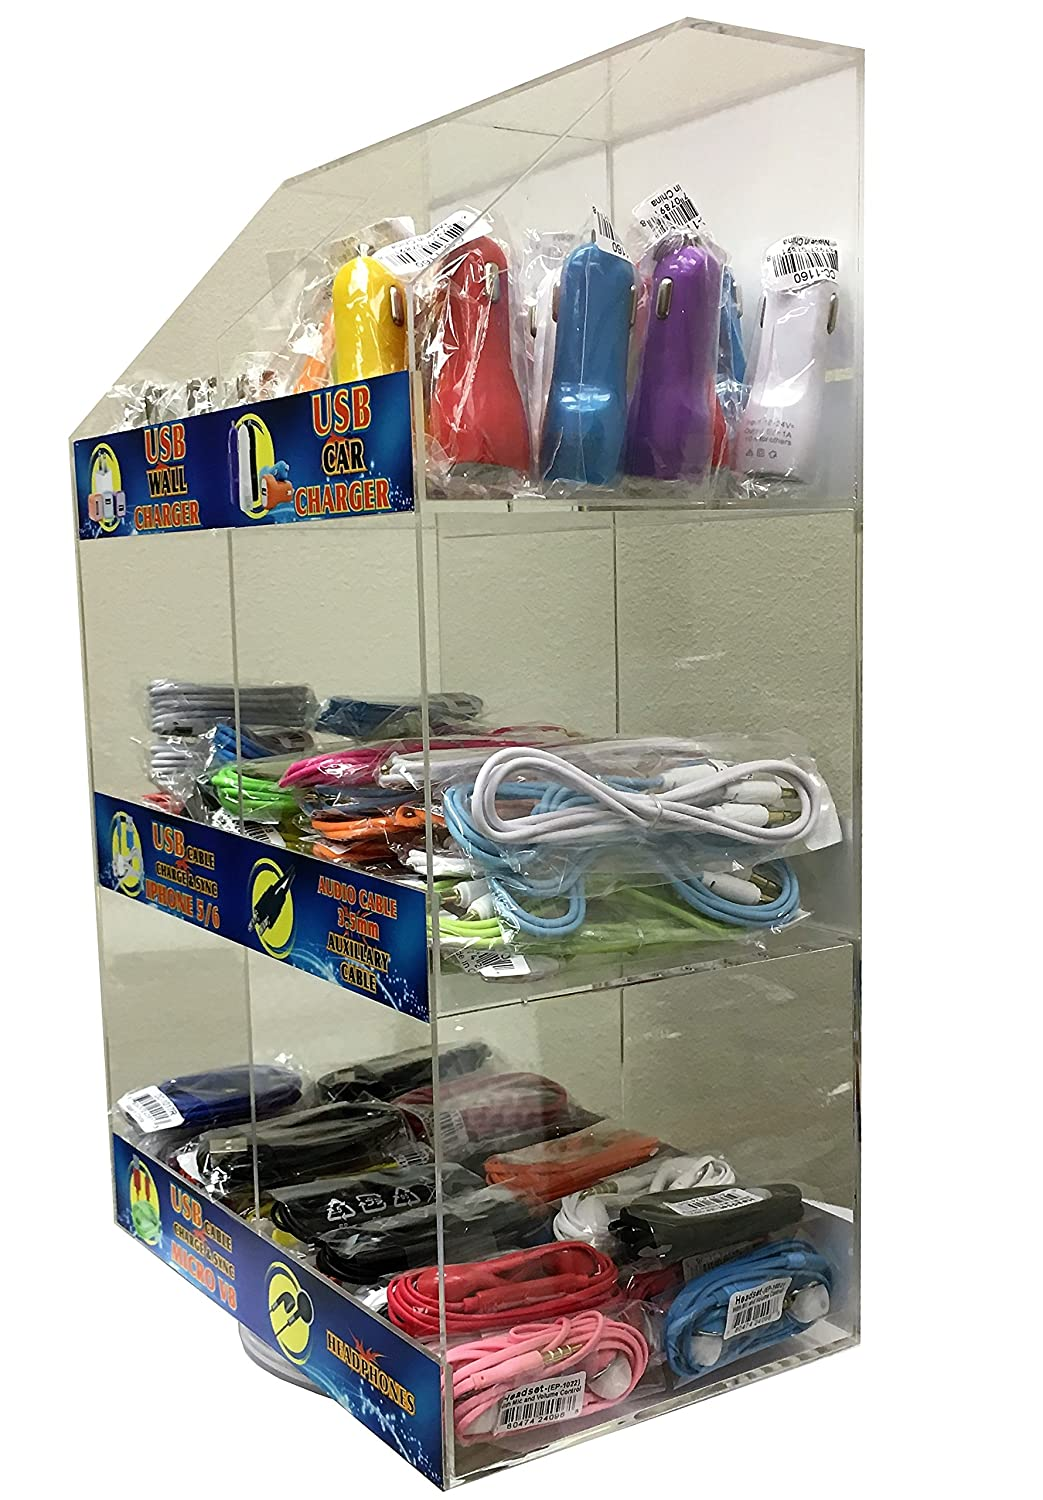 120 Pcs Wholesale Cell Phone Accessories Counter Top Display Rack with Universal USB Car Chargers, Home Adapters, Data Cables for Smartphones, Earphones & Auxiliary Cable (120 Pcs)